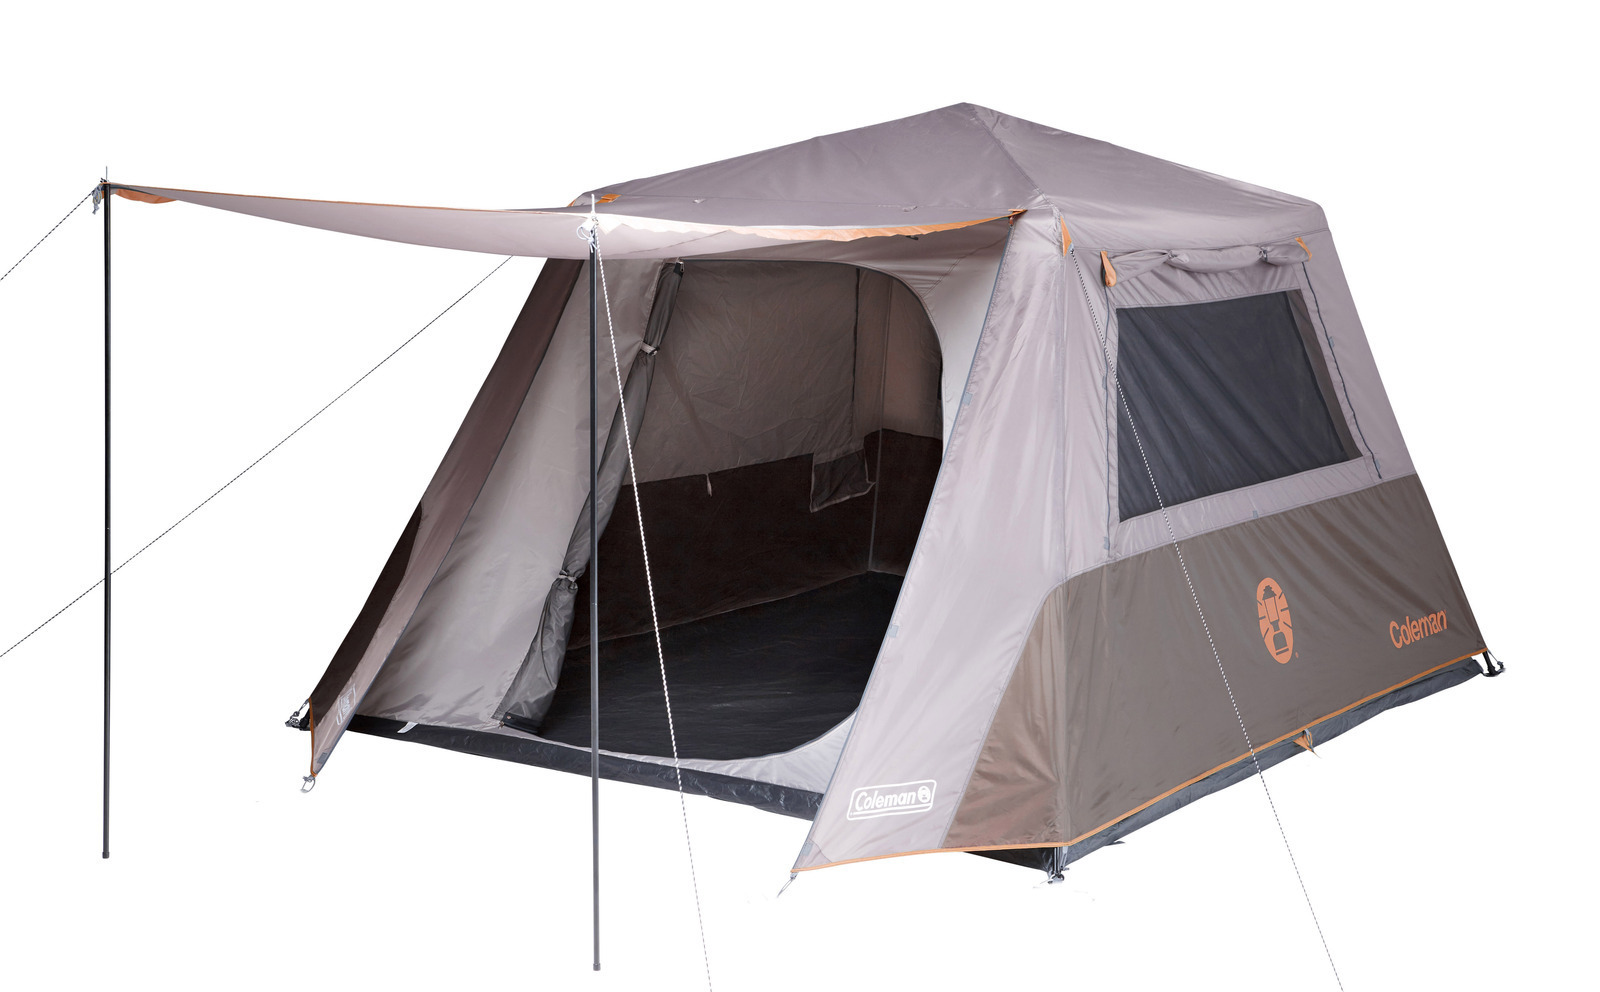 Coleman 6 Person Instant Tent : Best person tents australia — outback review